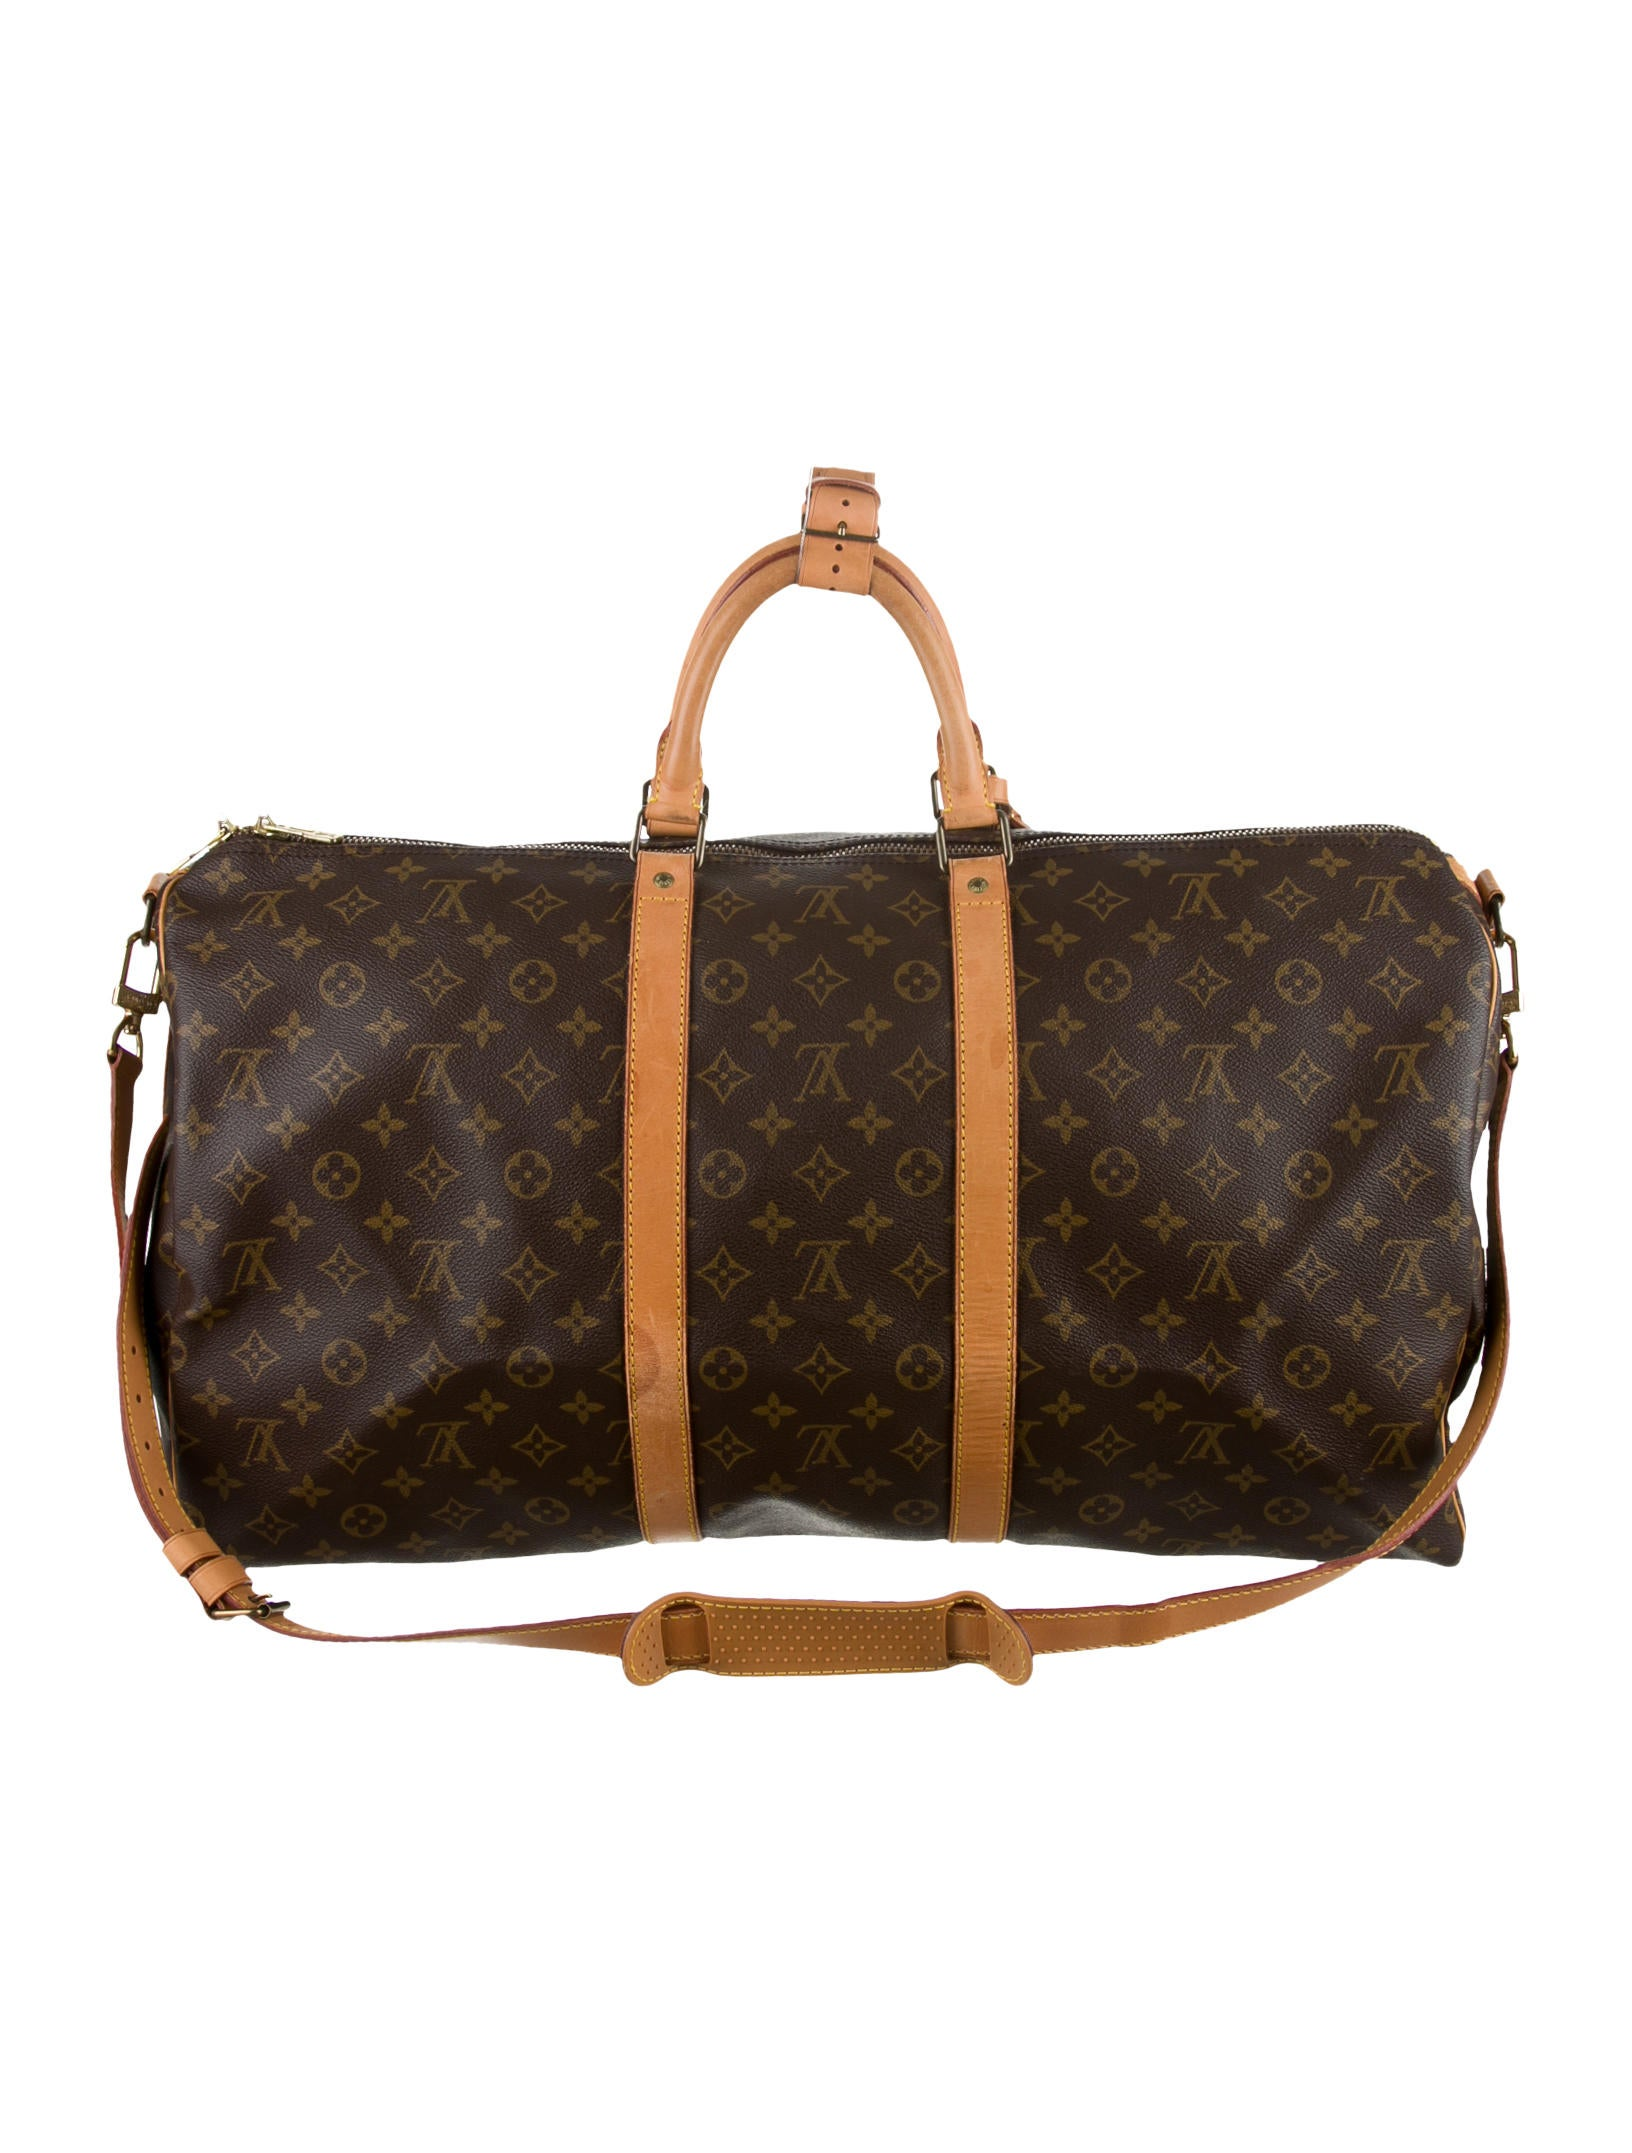 louis vuitton keepall bandouliere 55 handbags lou46464 the realreal. Black Bedroom Furniture Sets. Home Design Ideas